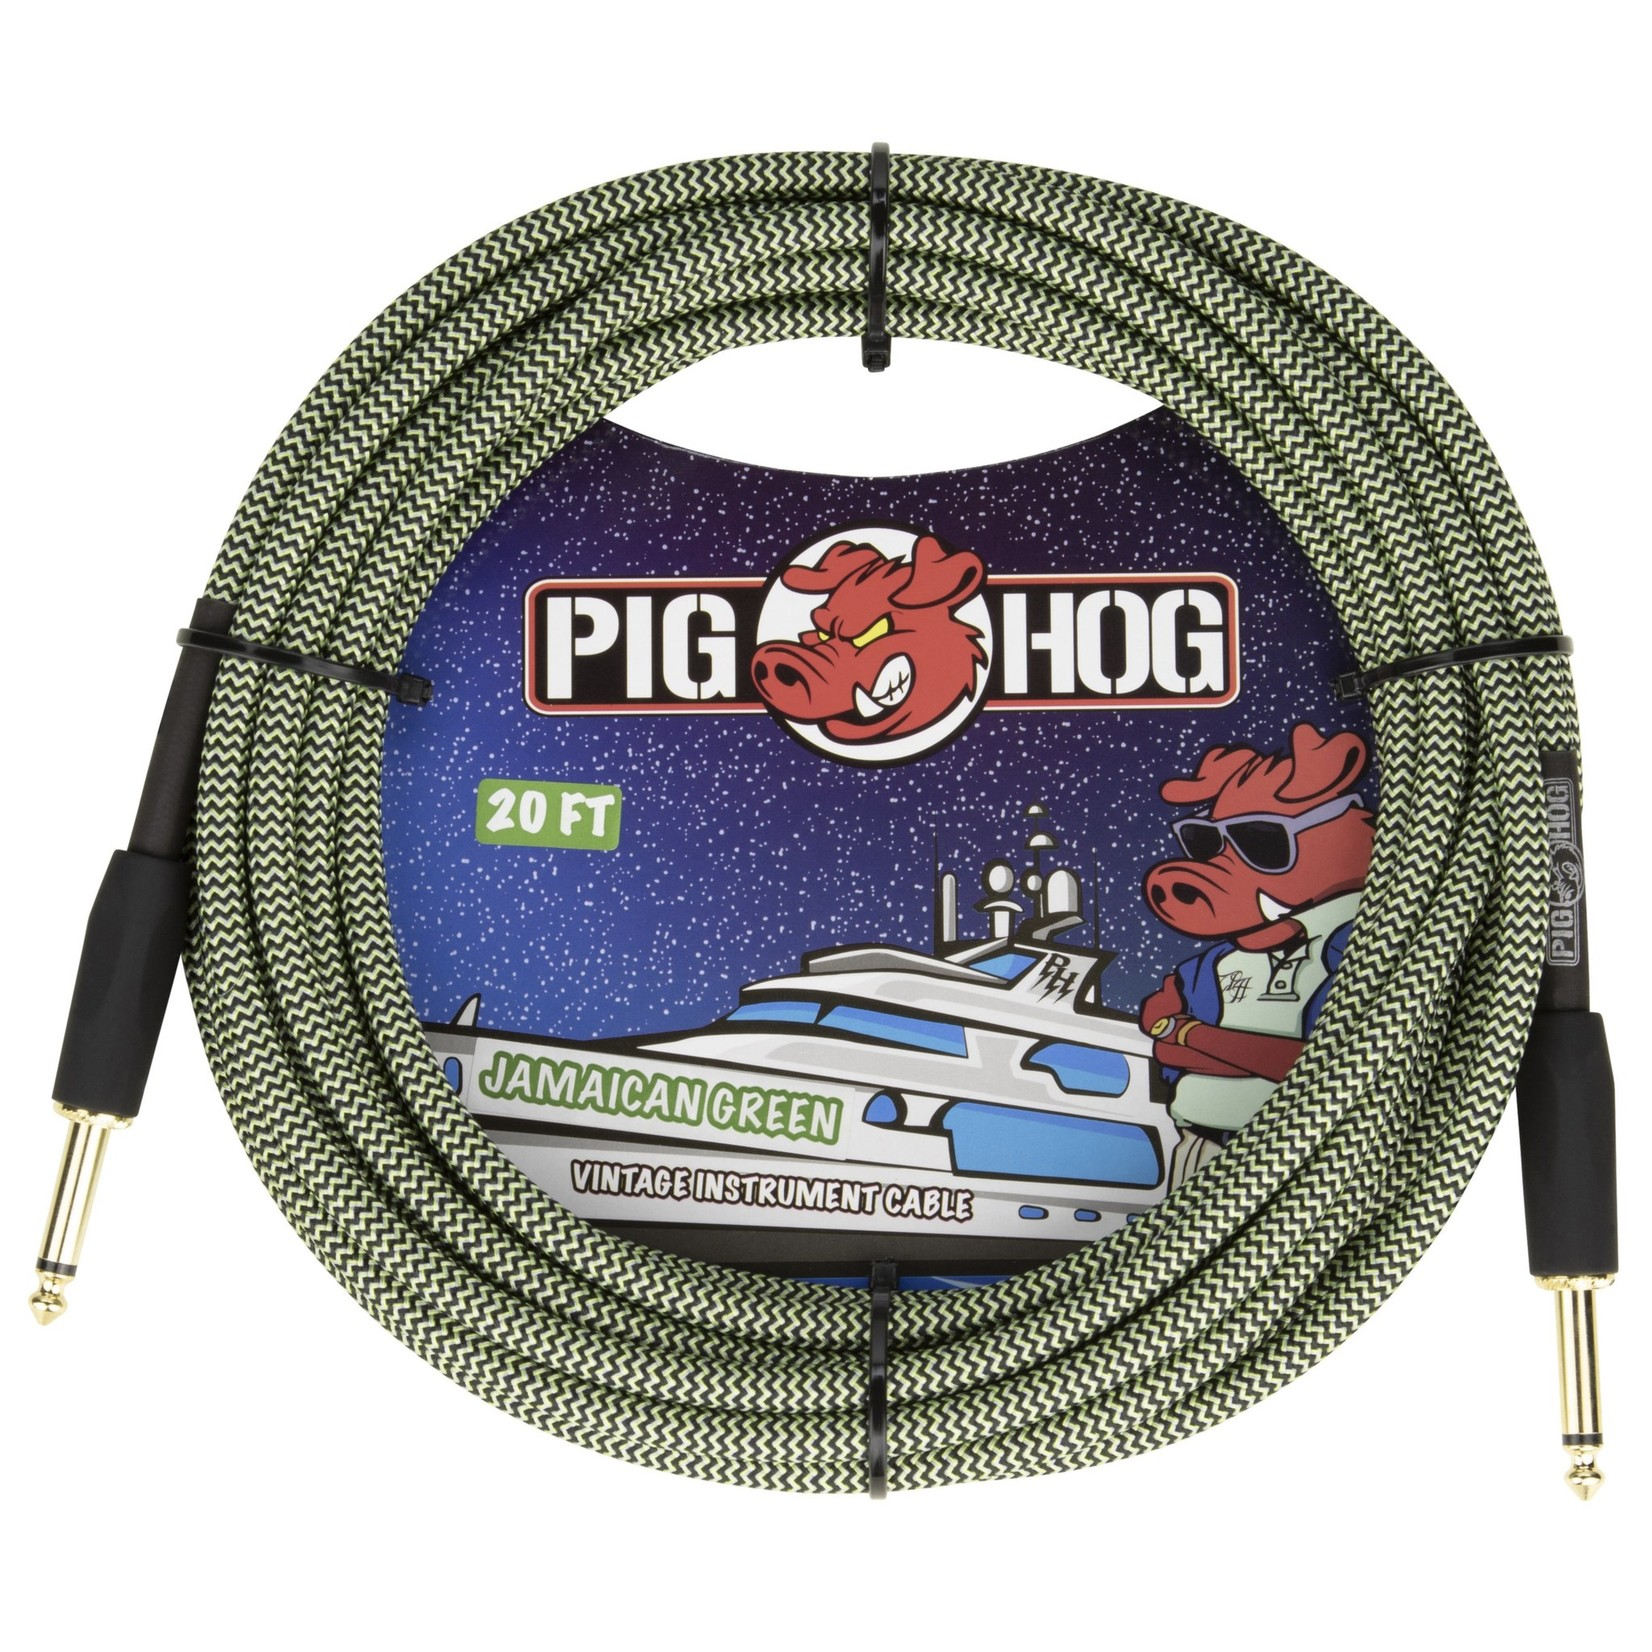 """Pig Hog Pig Hog 20-Foot Vintage Woven Instrument Cable, 1/4"""" Straight-Straight, Jamaican Green"""